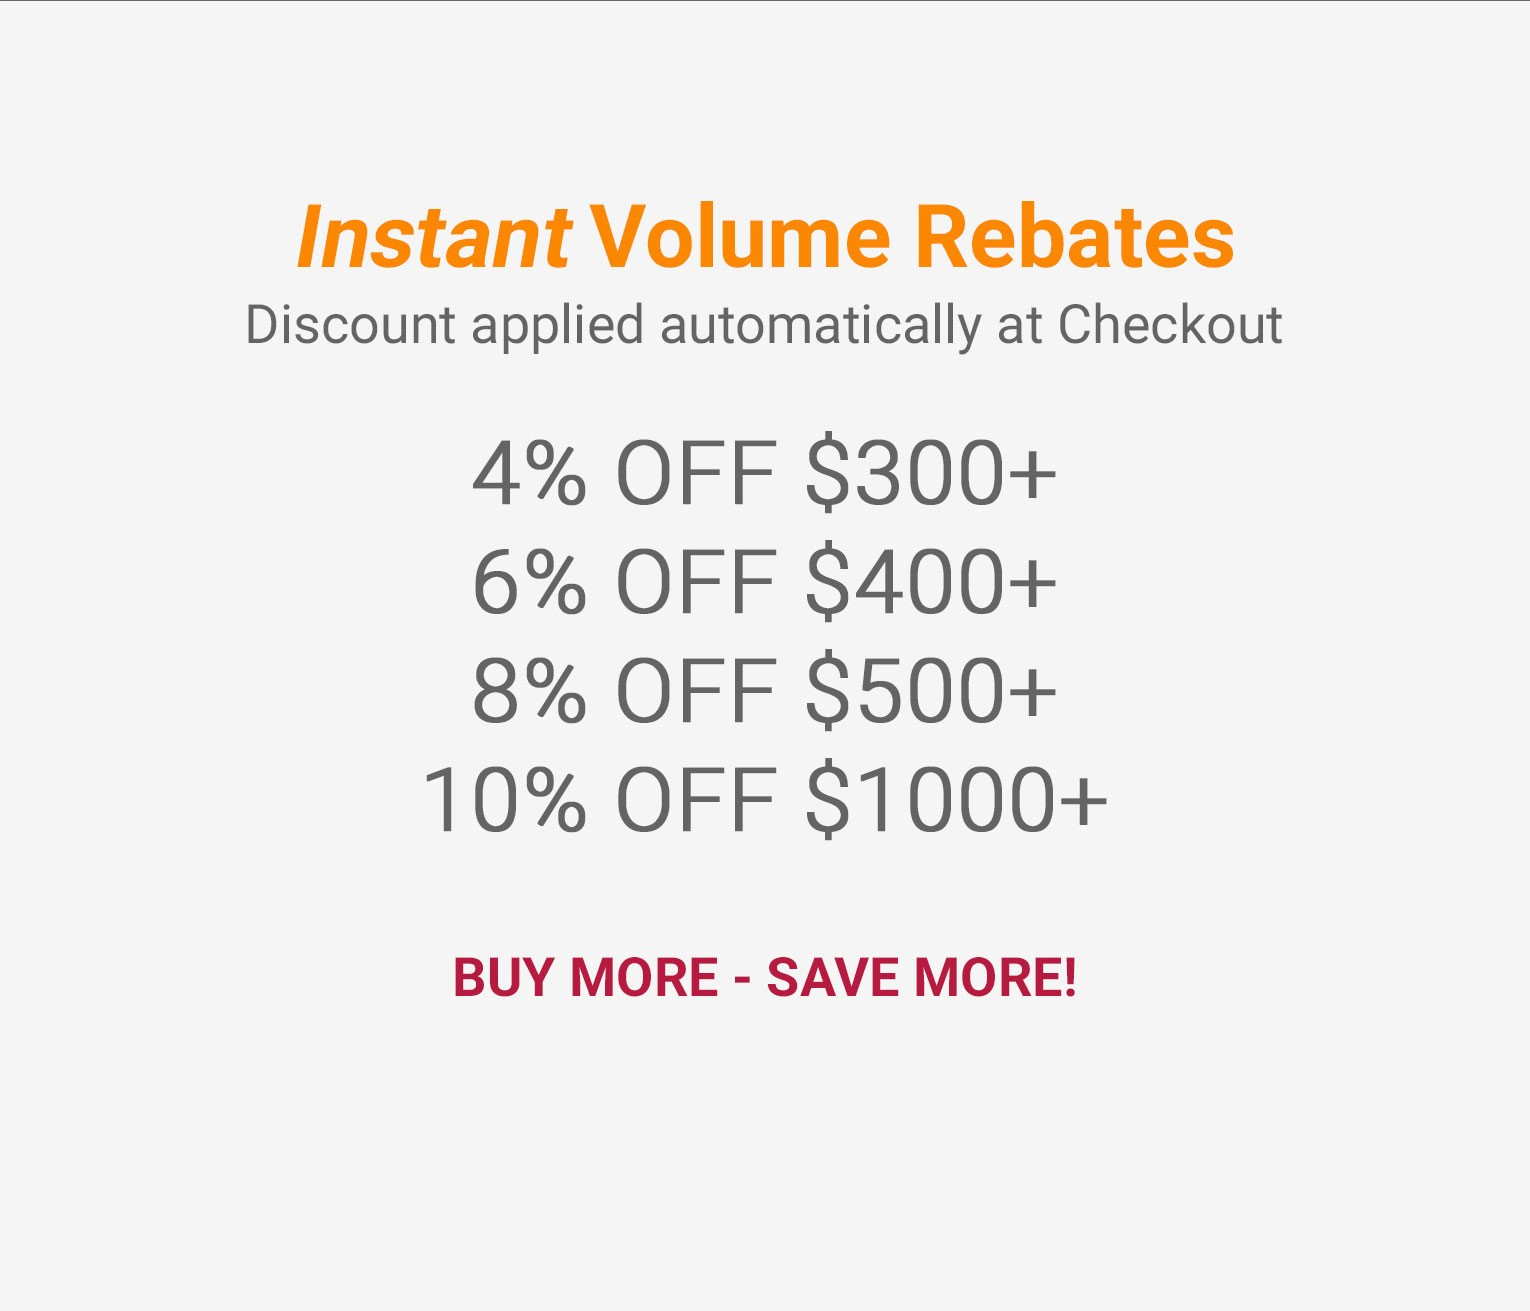 Instant Volume Rebates applied at checkout